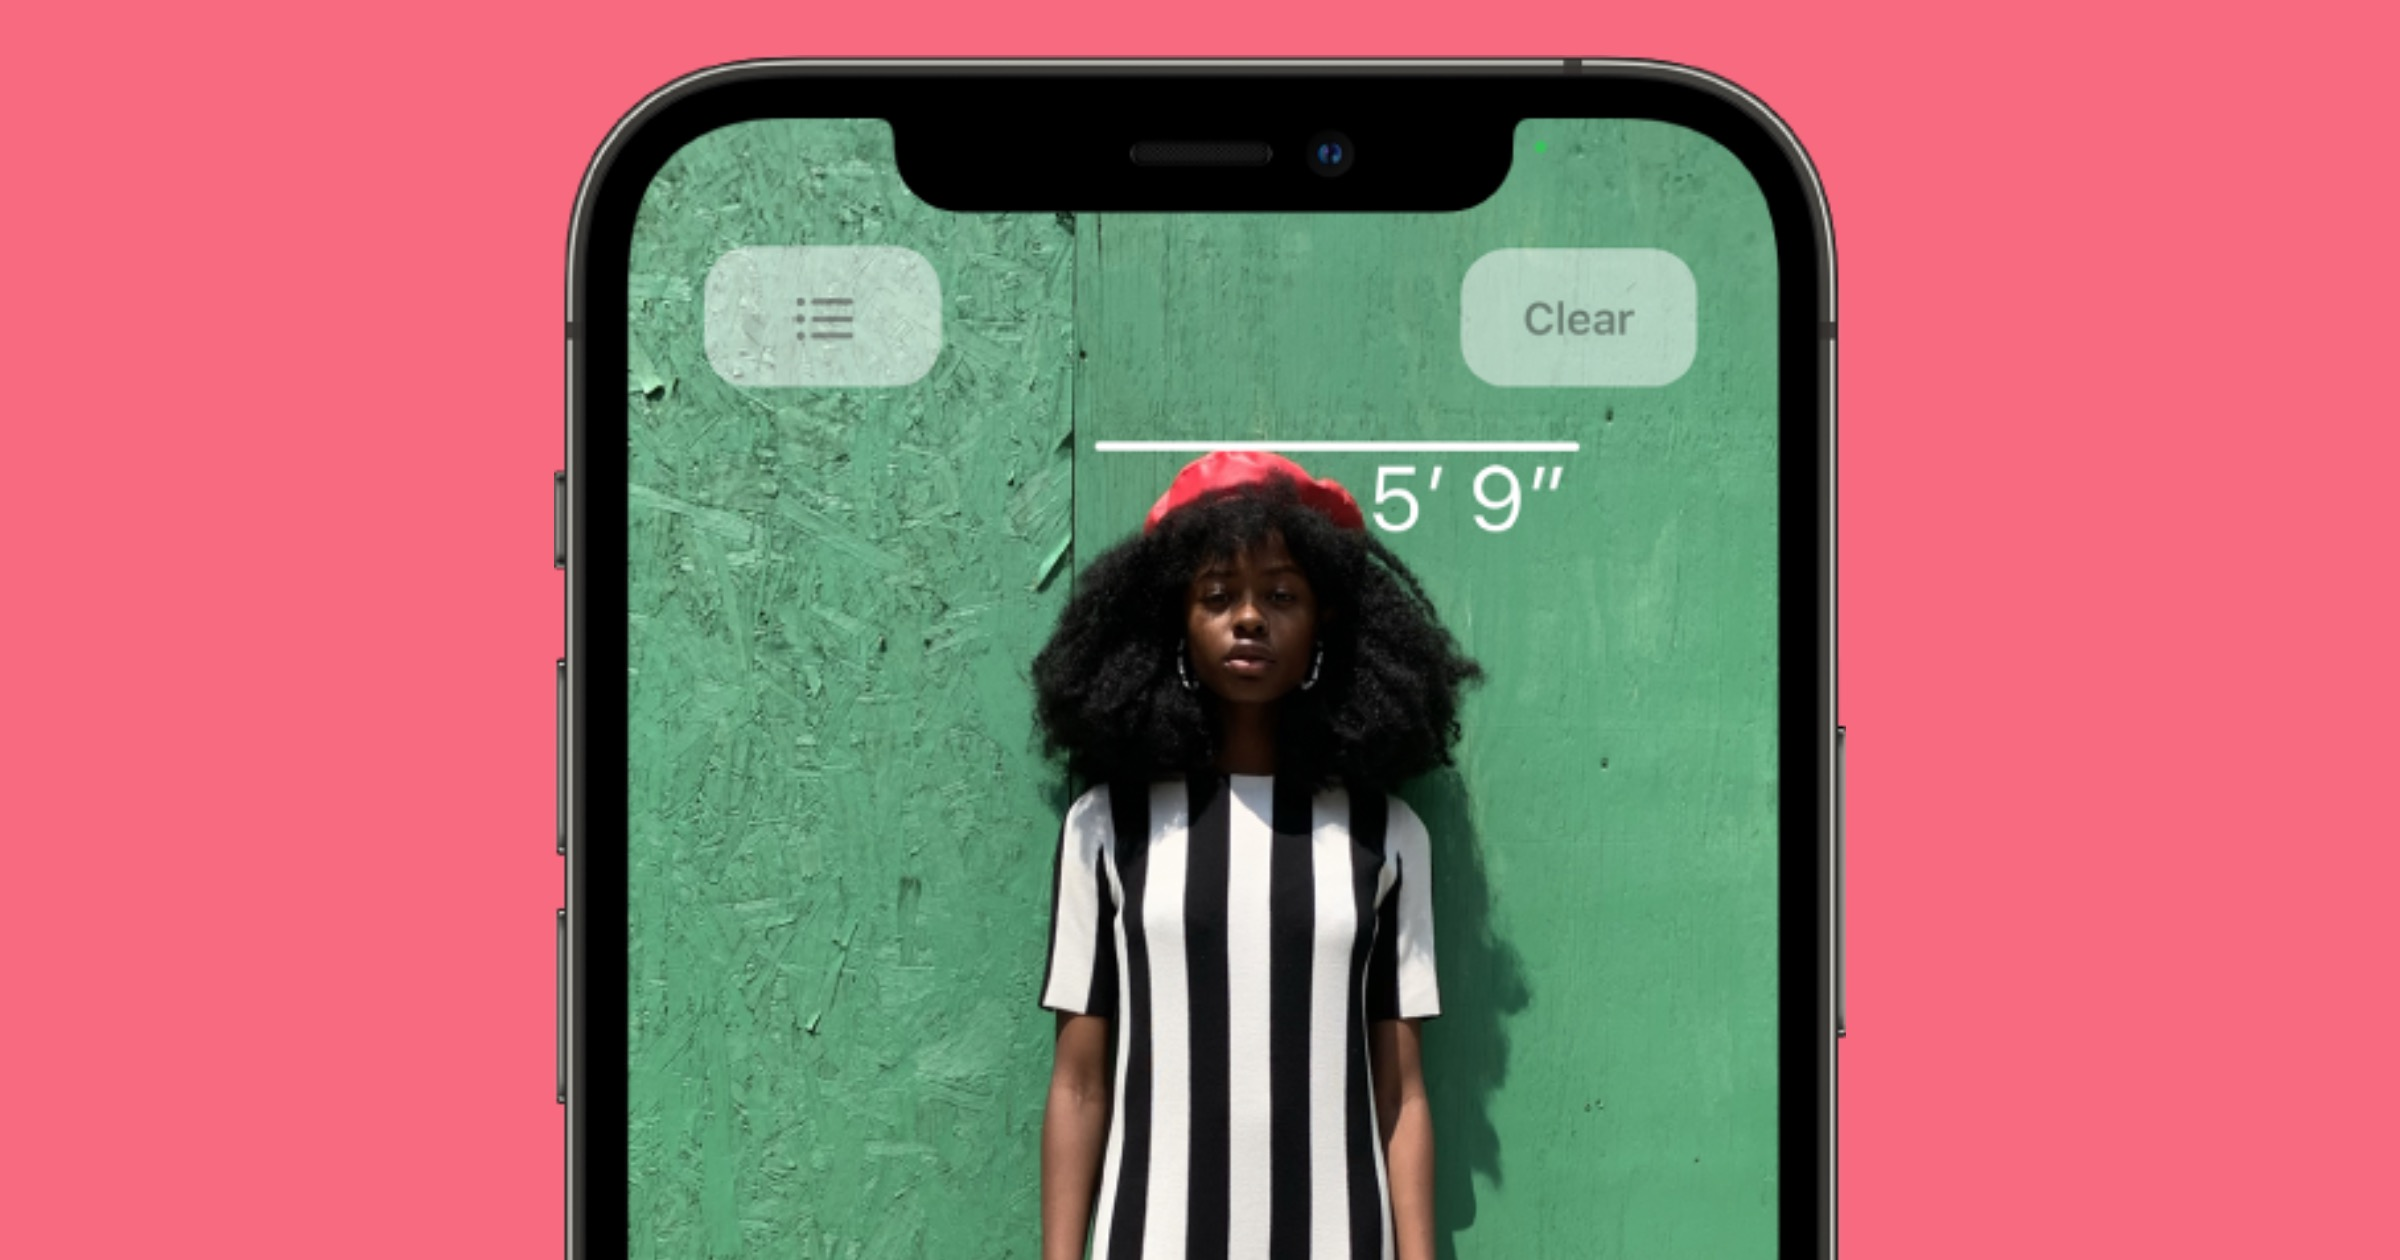 Screenshot of measuring a person using iPhone 12 Pro.